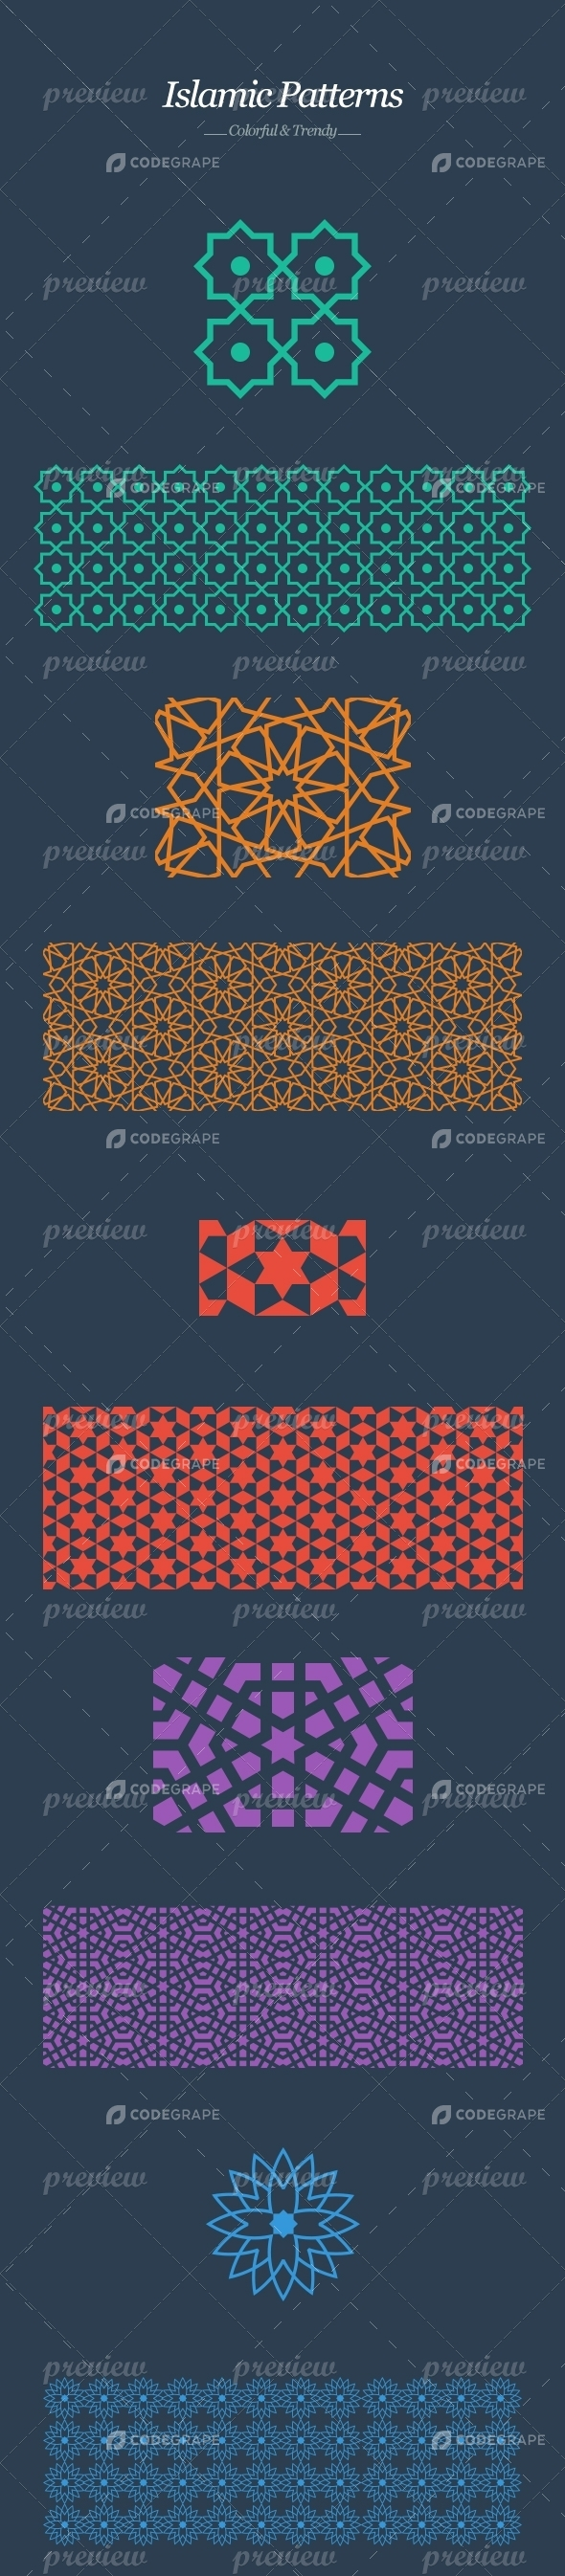 Islamic Tiles - five trendy colorful patterns